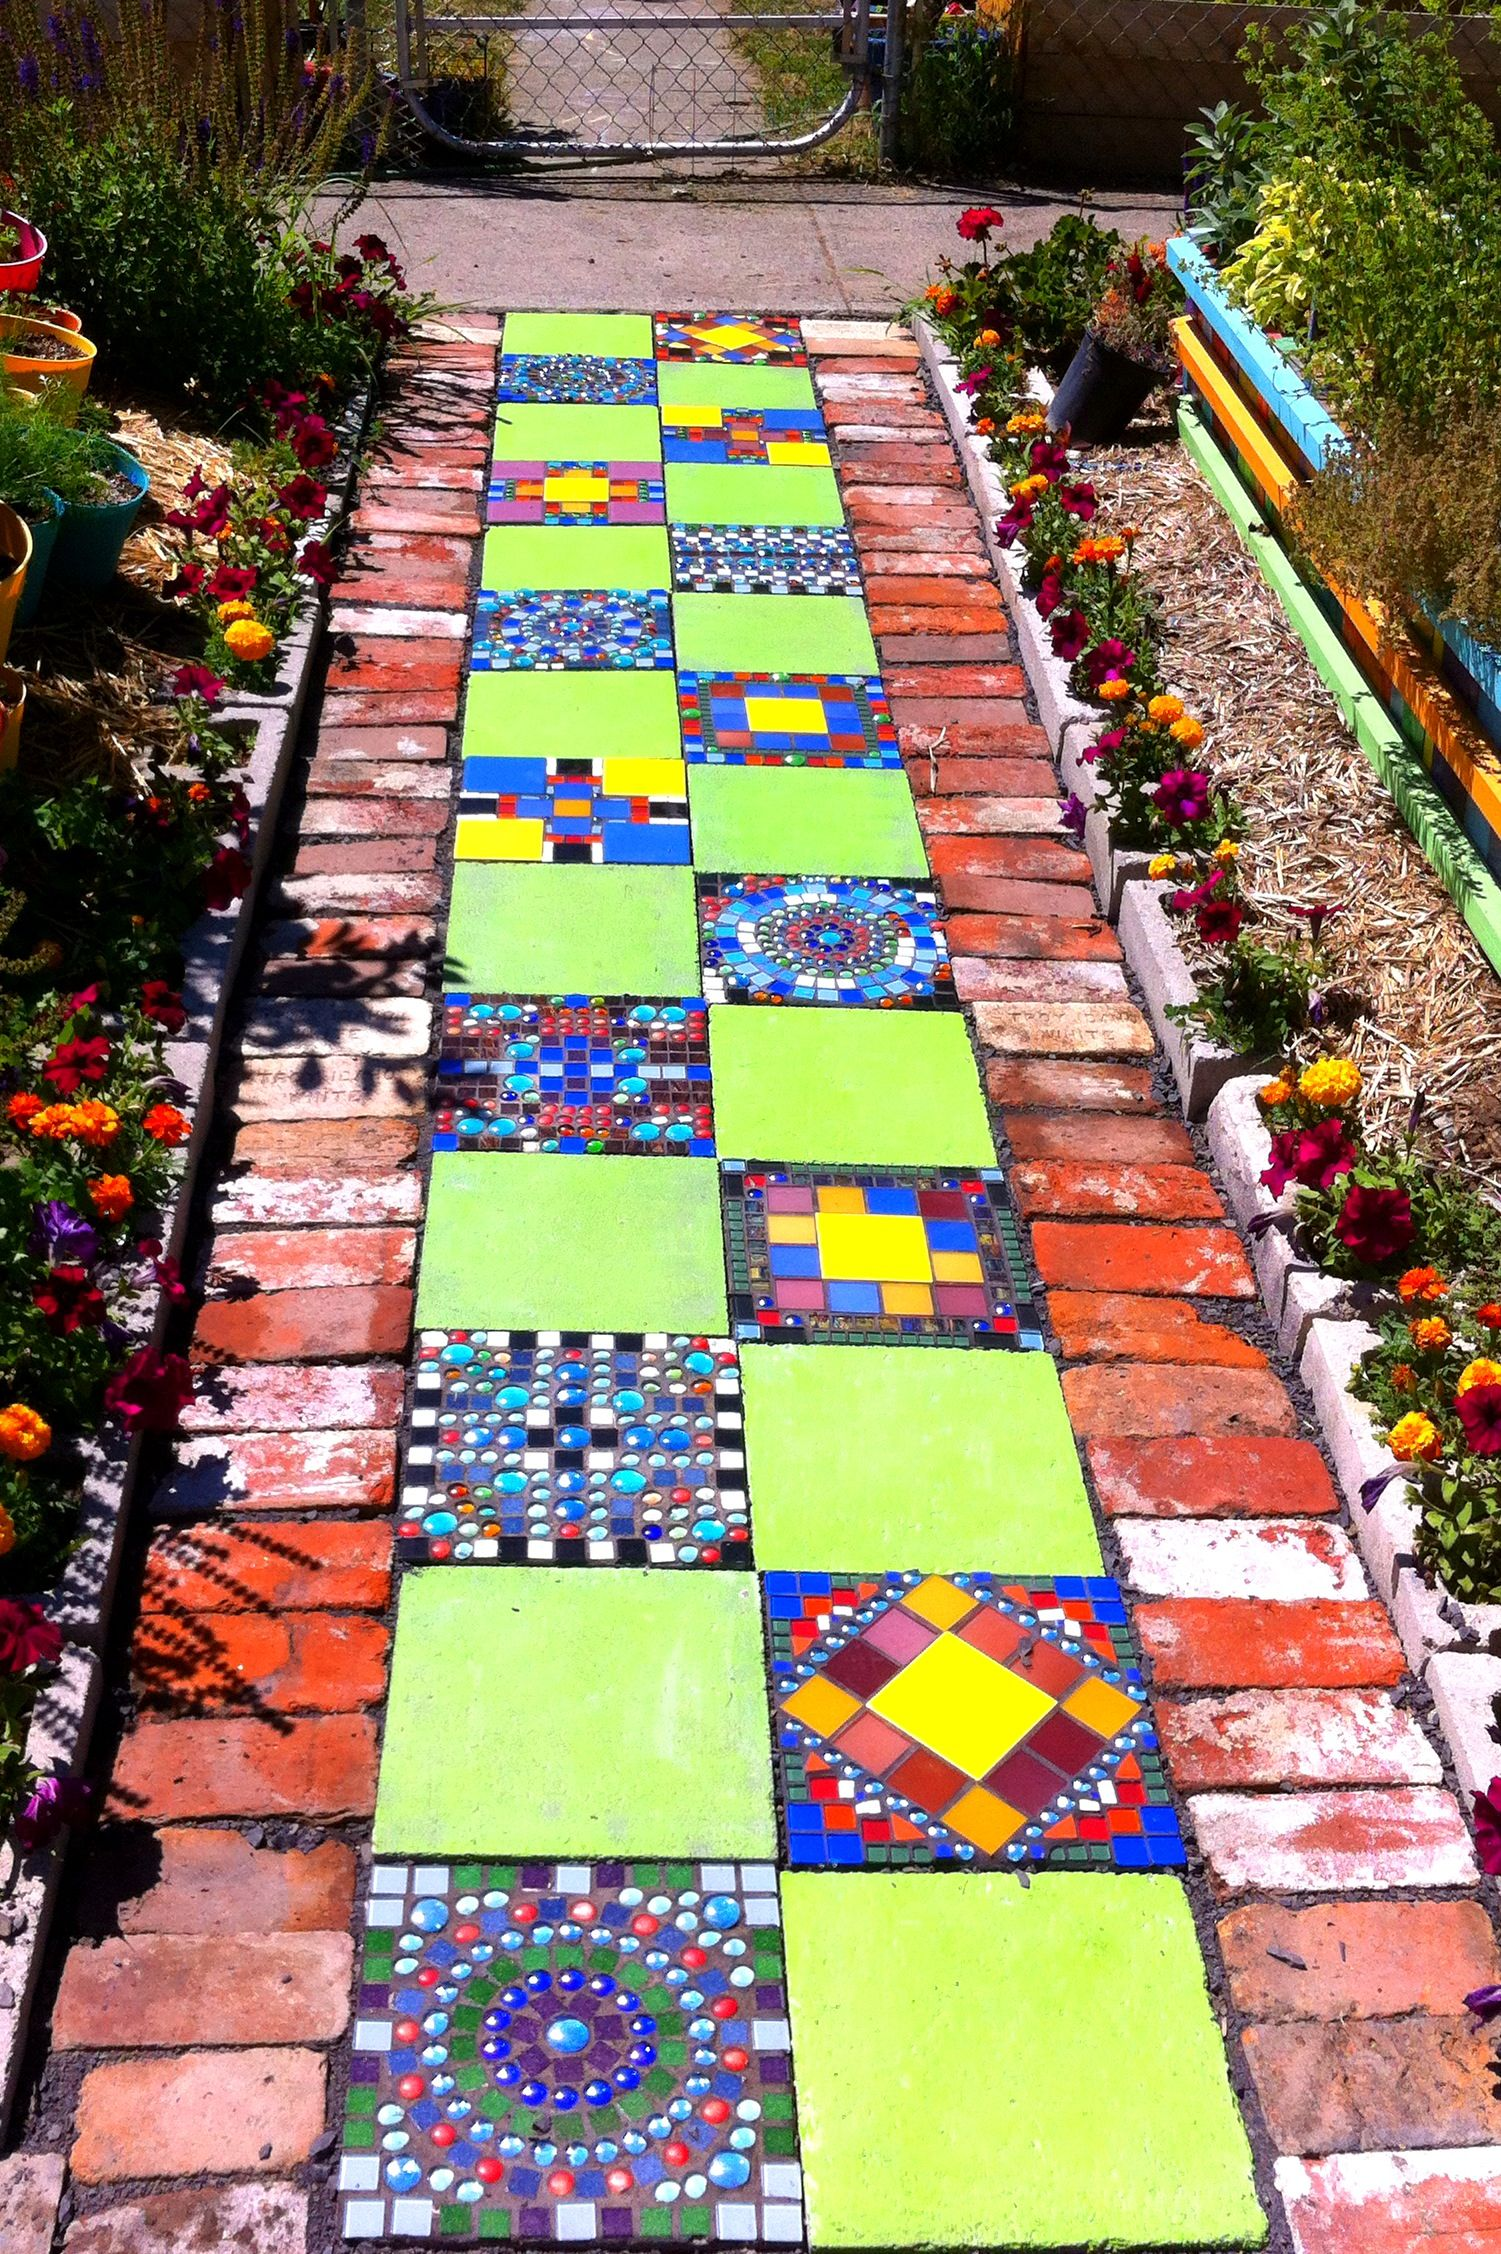 Mosaic and brick paver path i did for my front yard garden for Garden mosaic designs